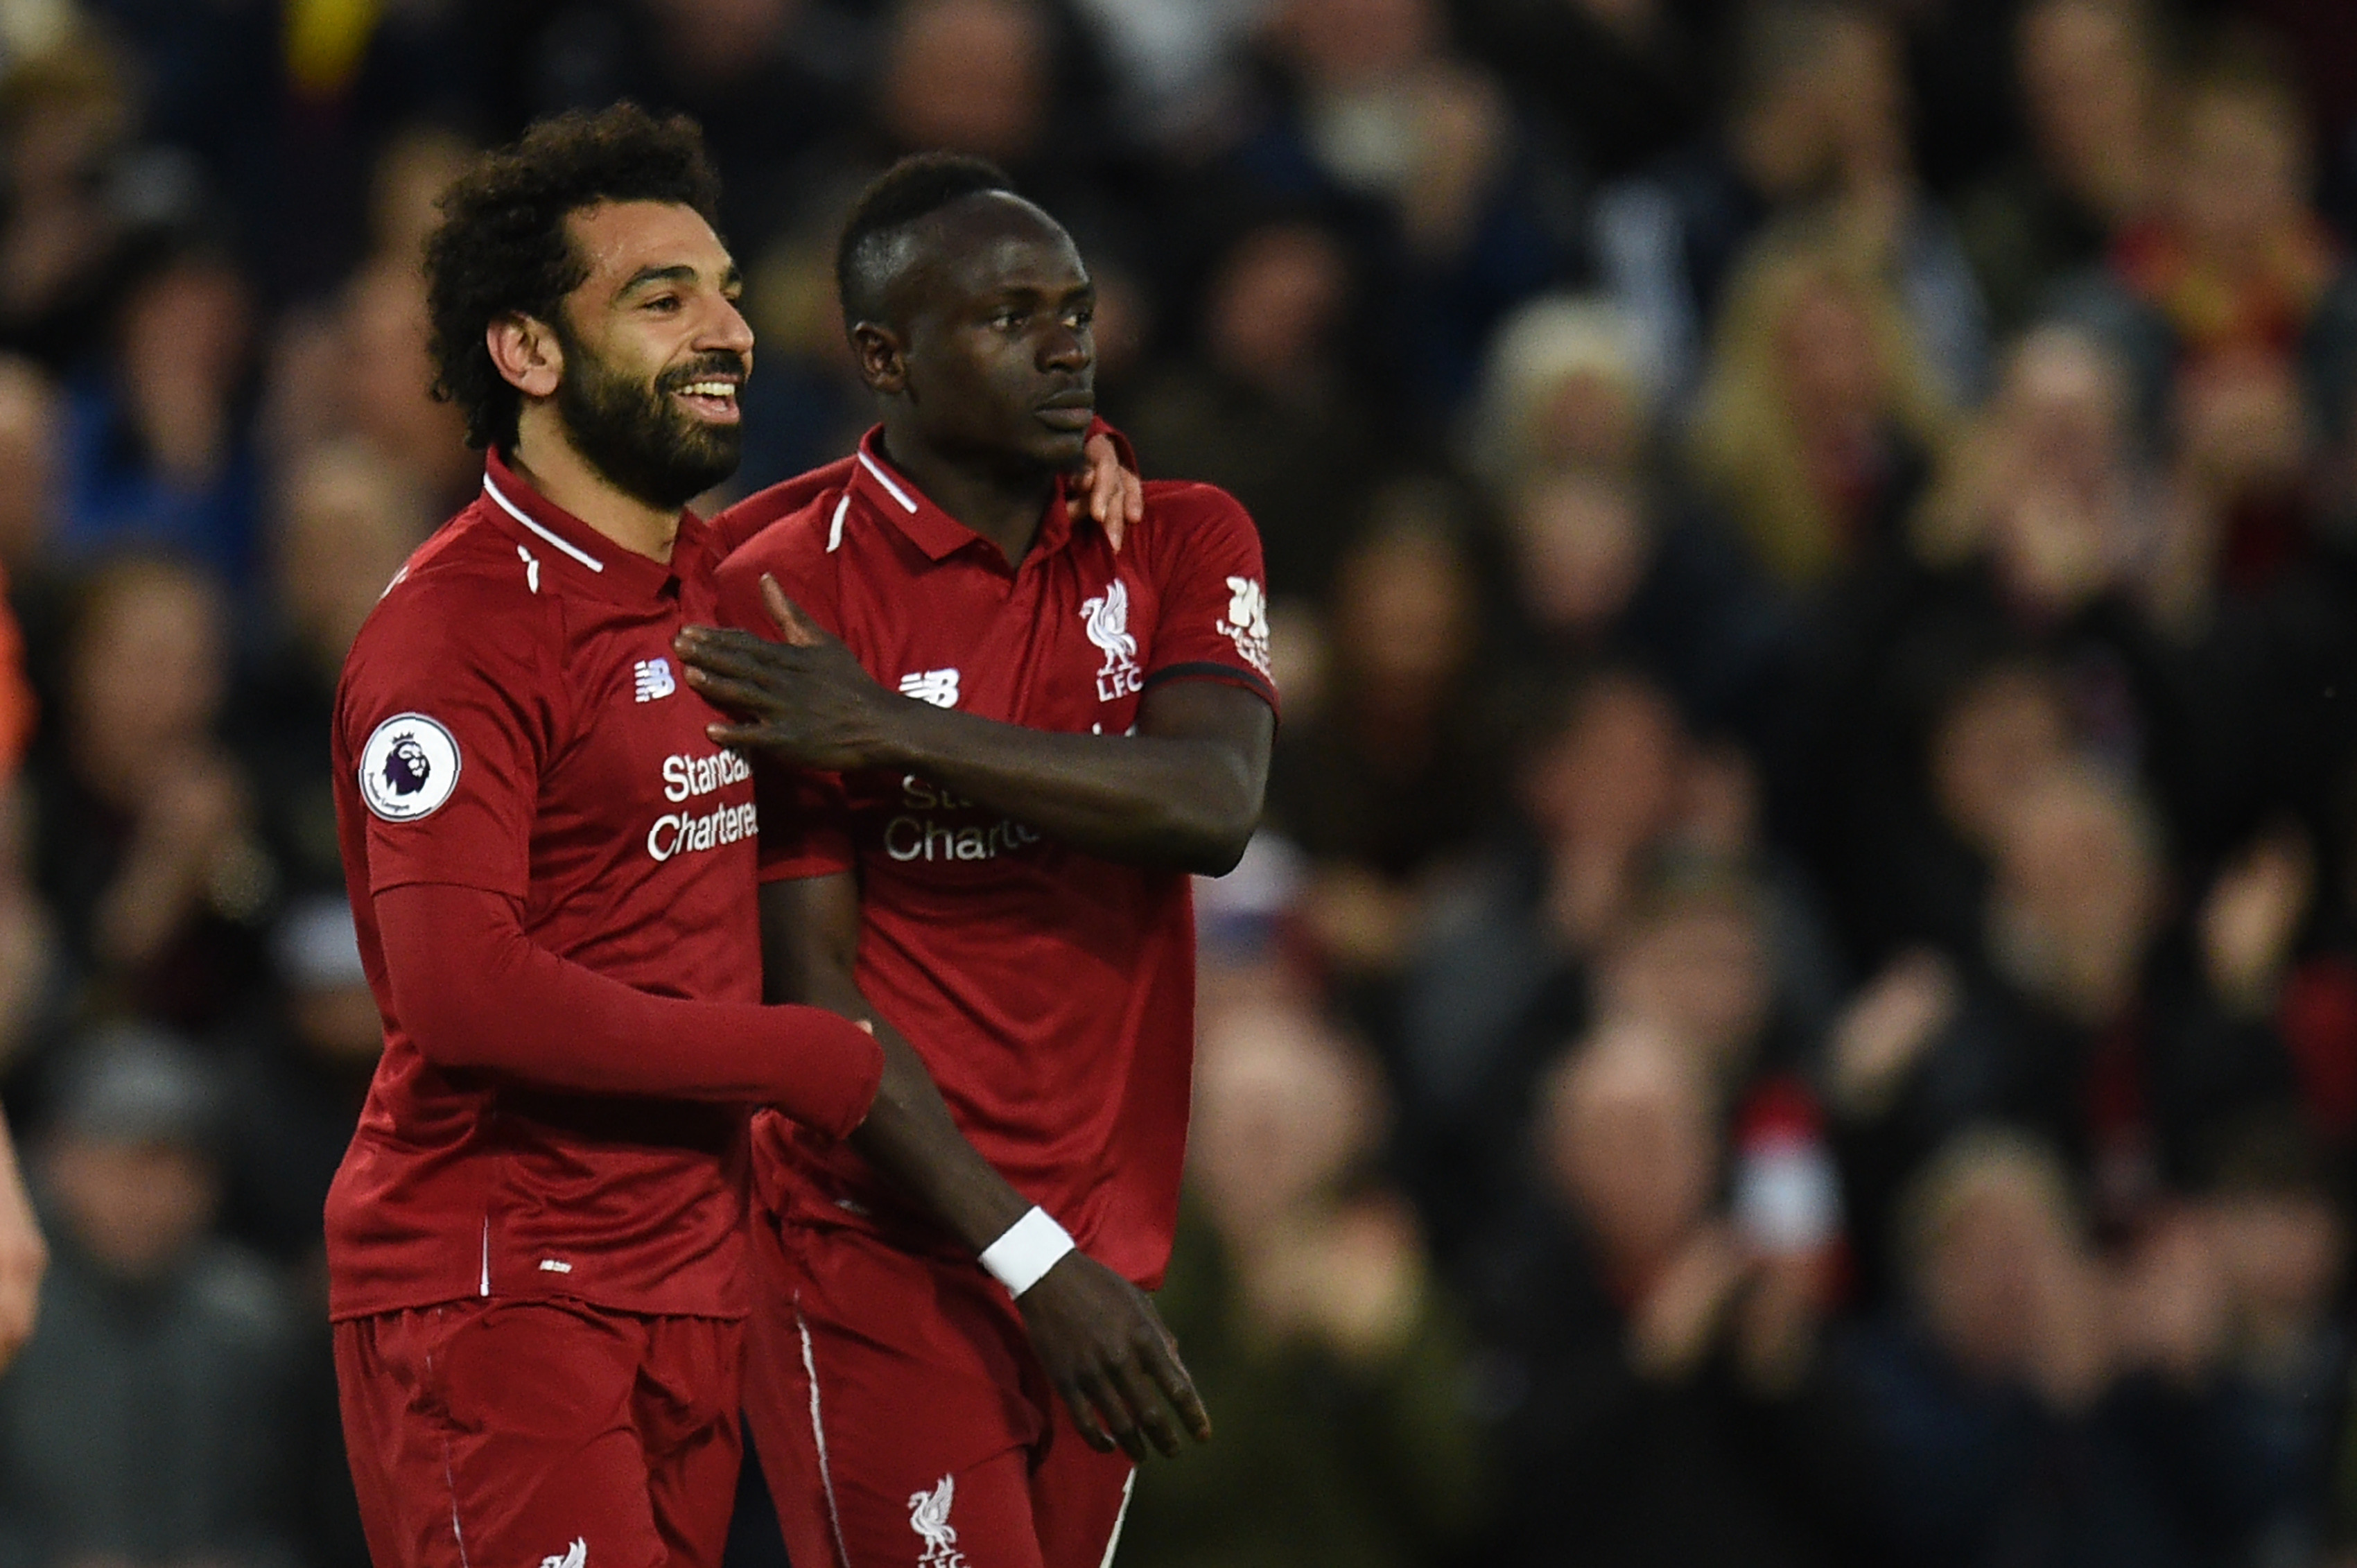 Mo Salah and Sadio Mane also finished with 22 goals